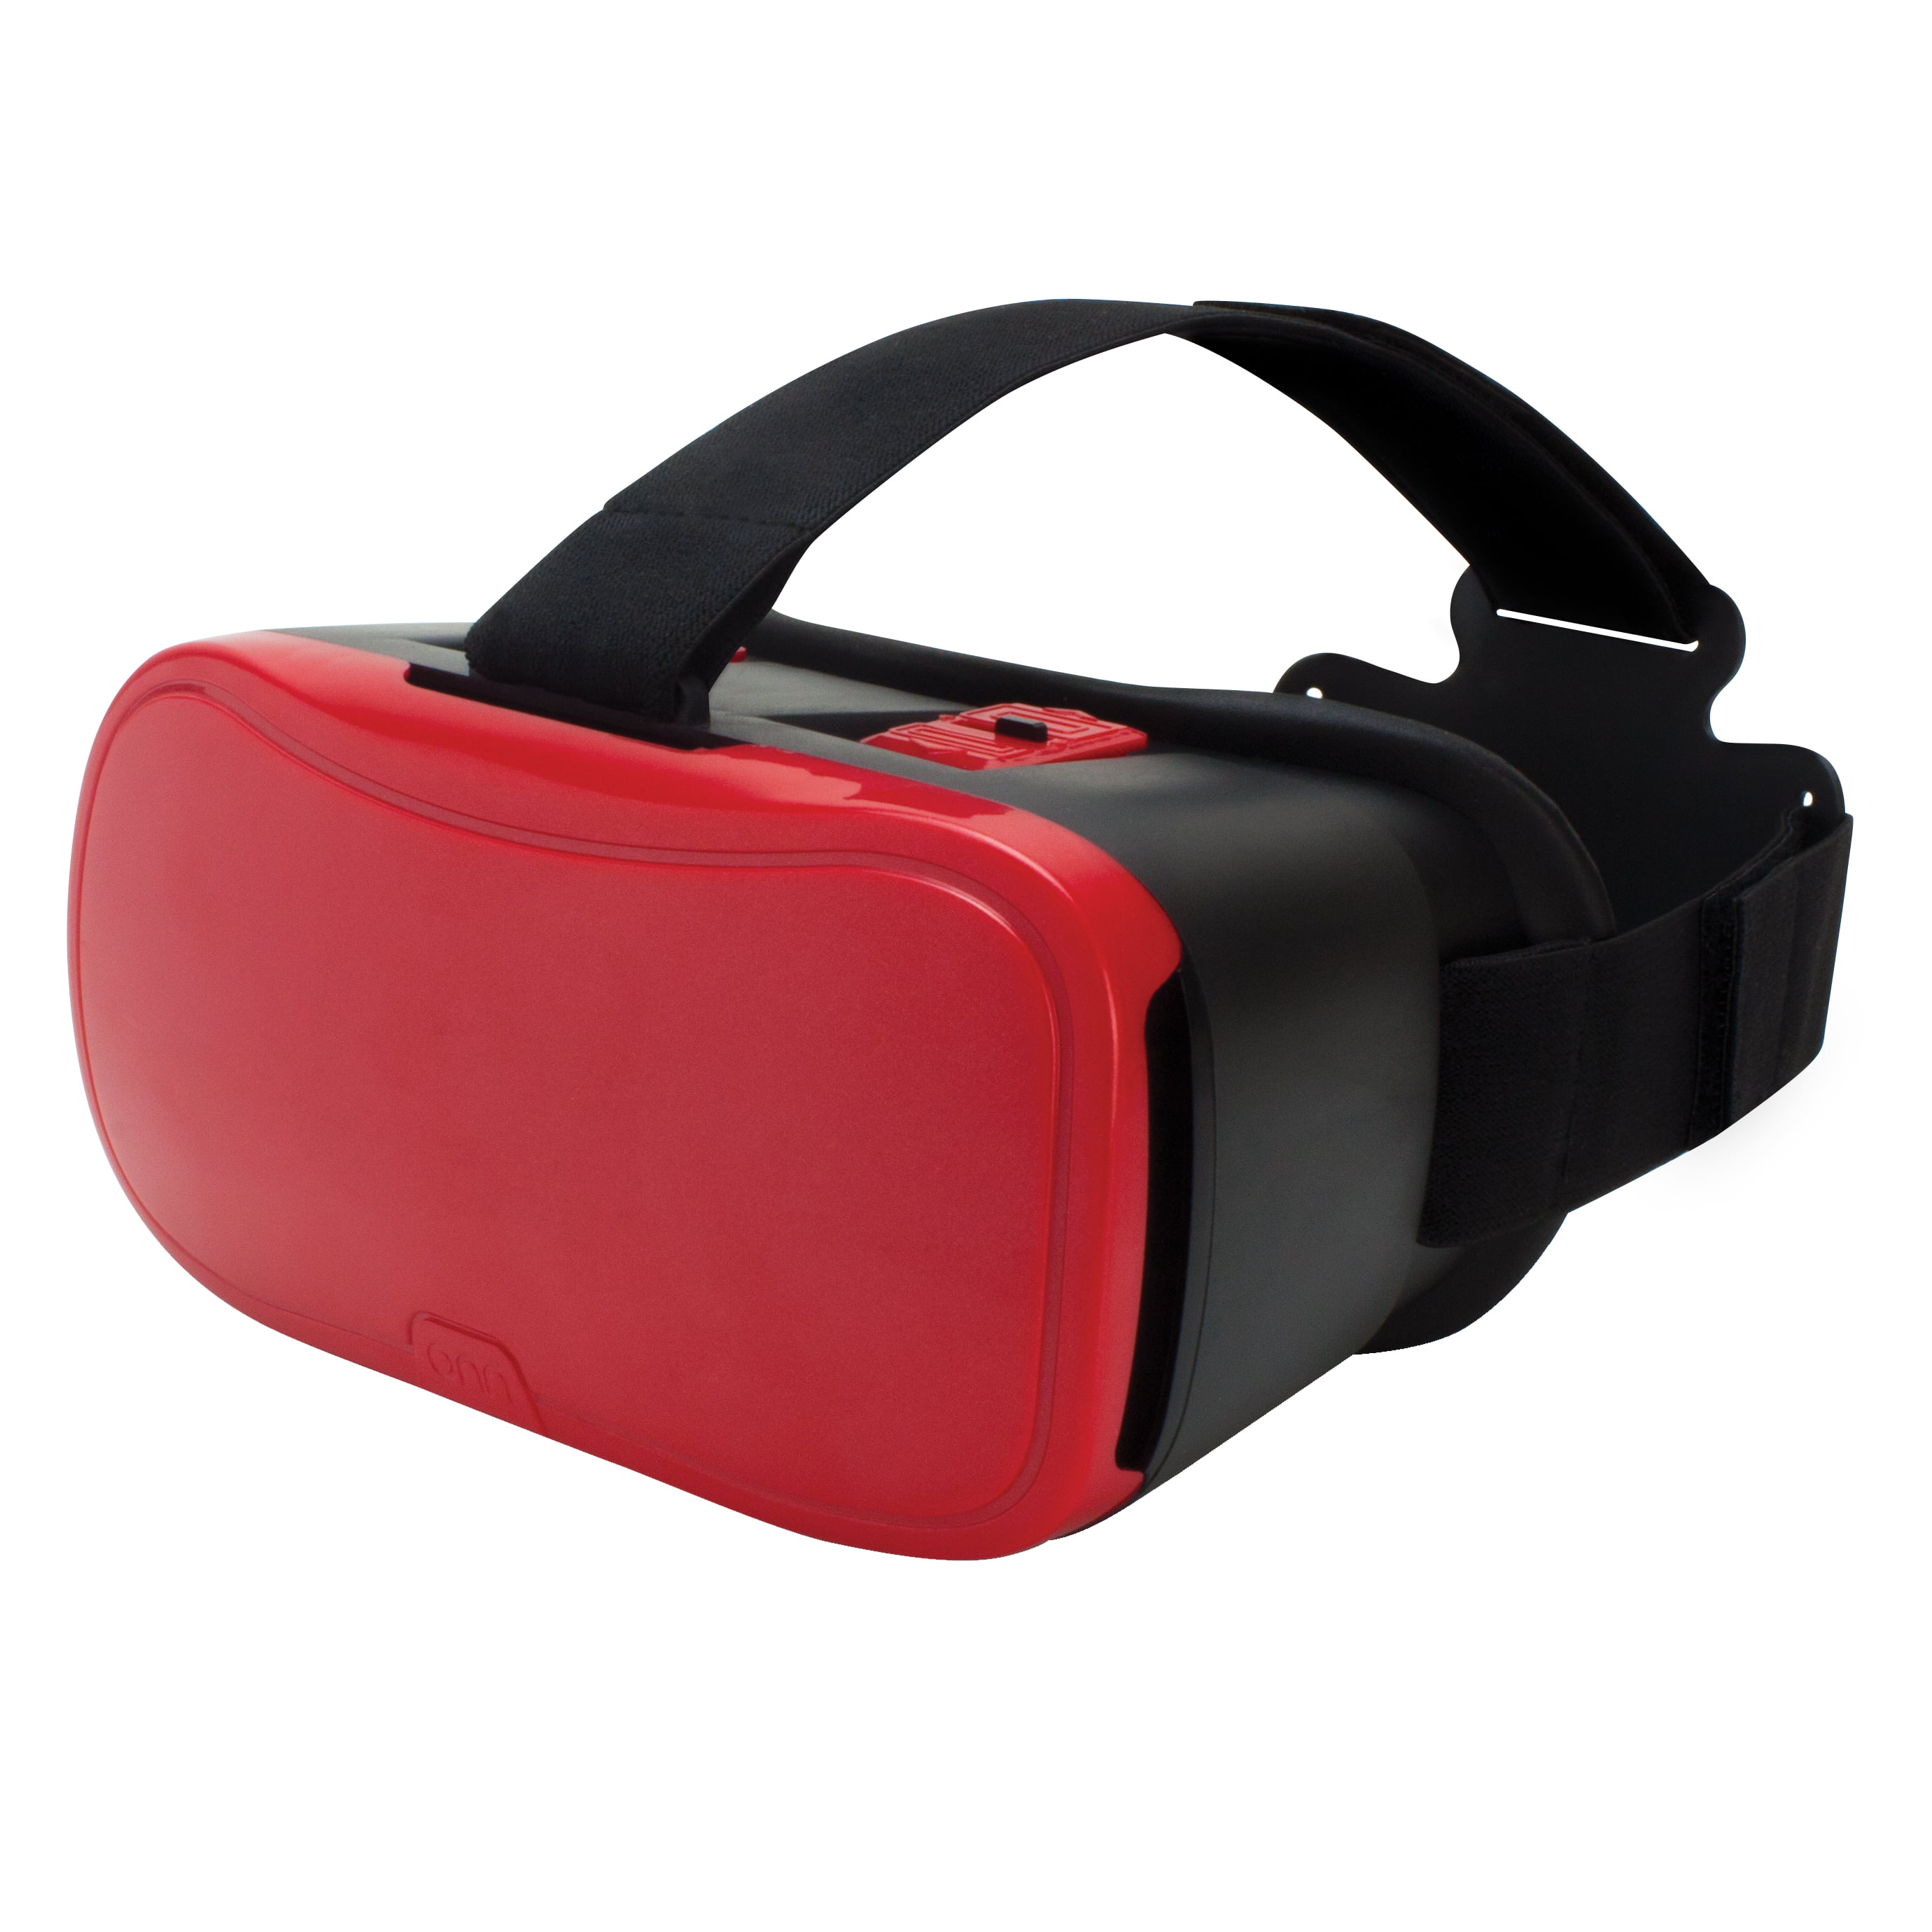 Onn Virtual Reality Headset Blue Walmartcom